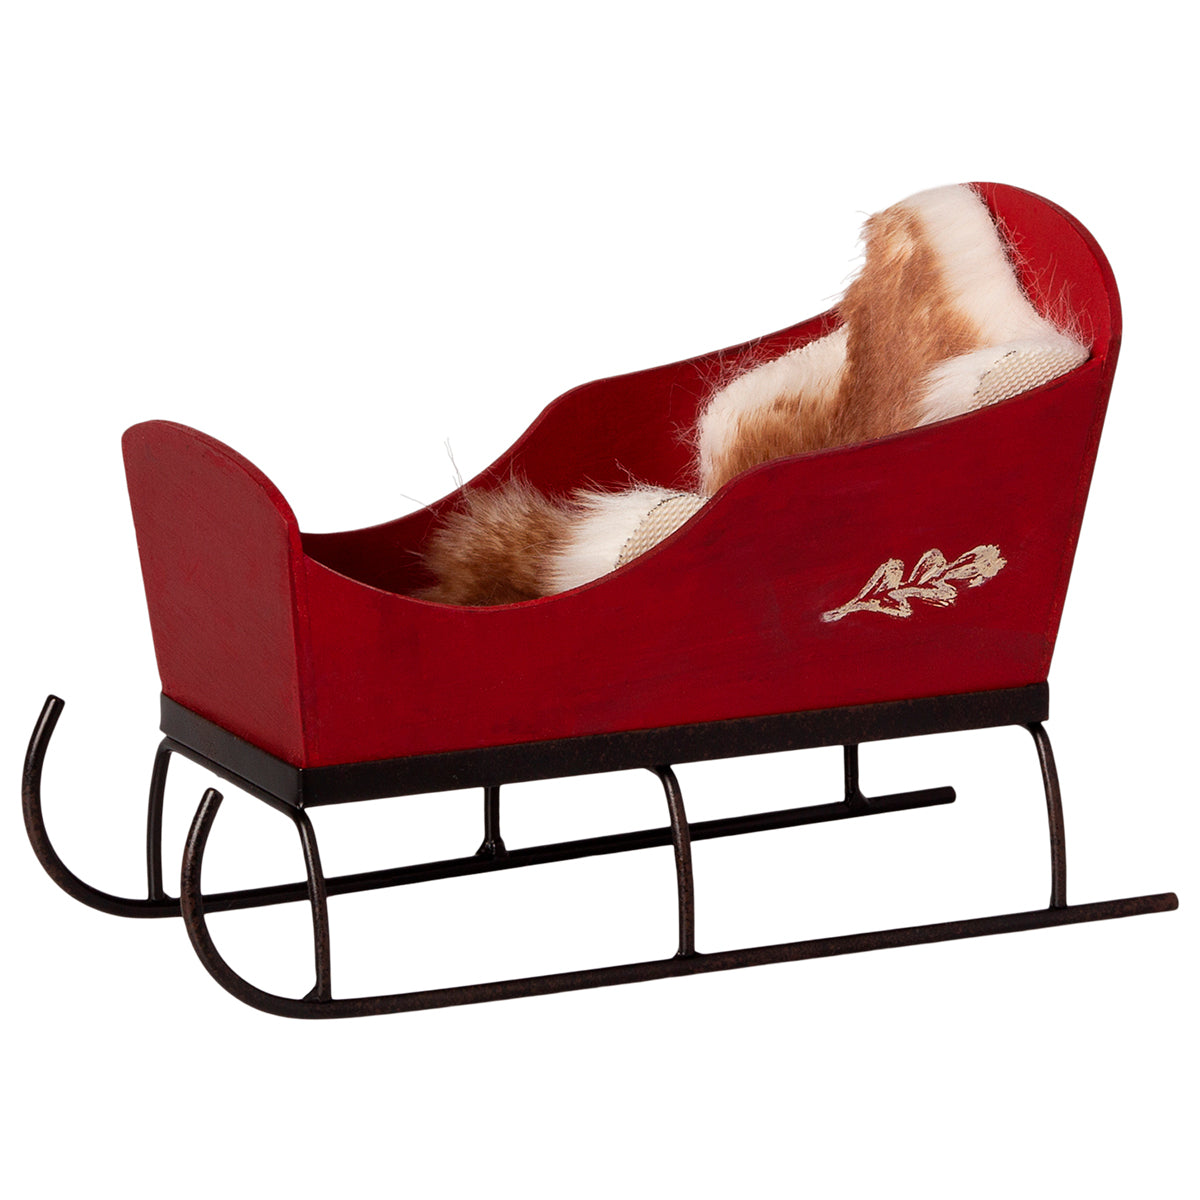 Maileg miniature Sleigh - Red with blanket